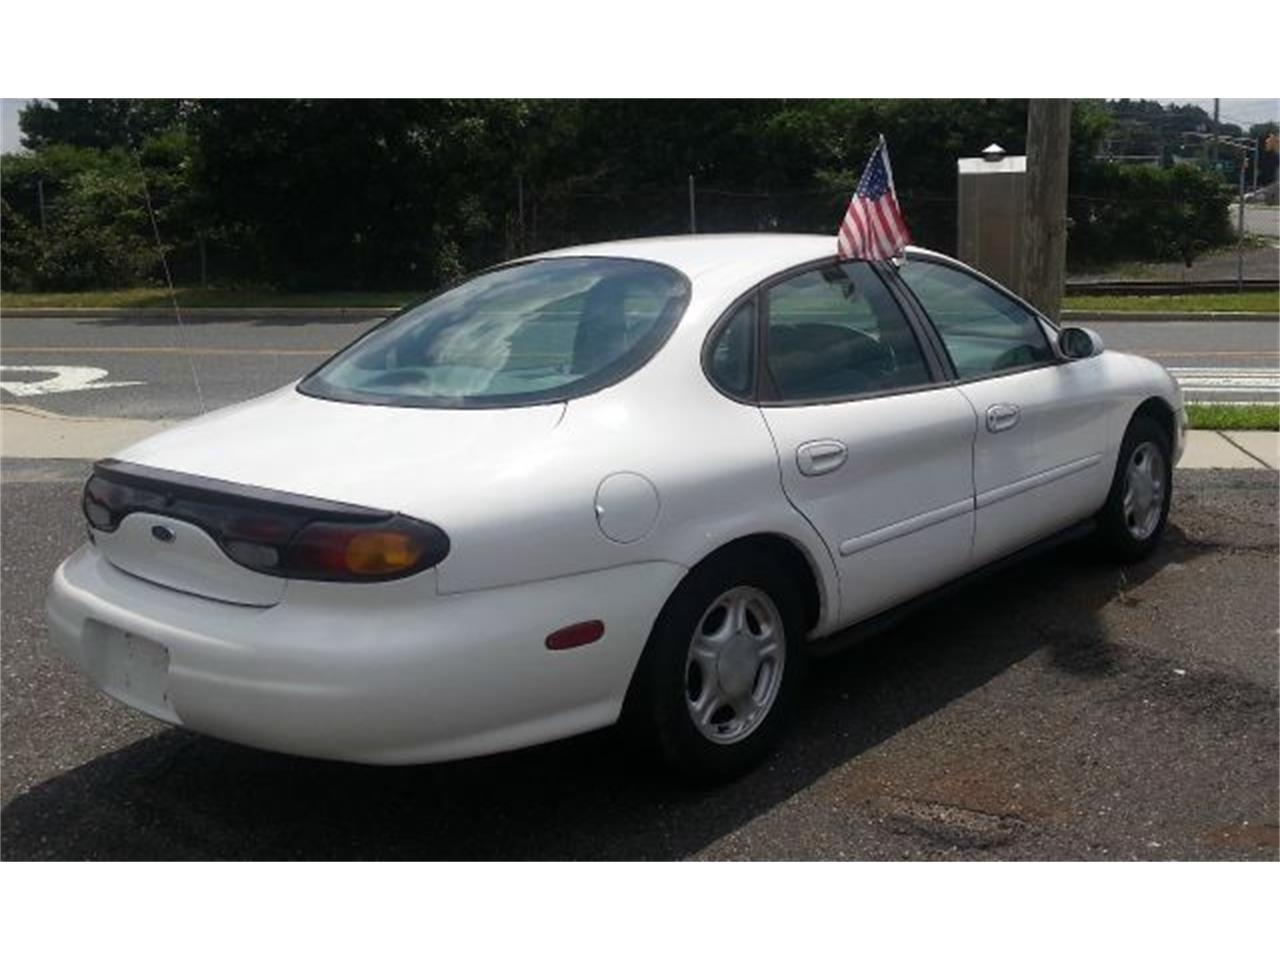 Large picture of 96 taurus ocer